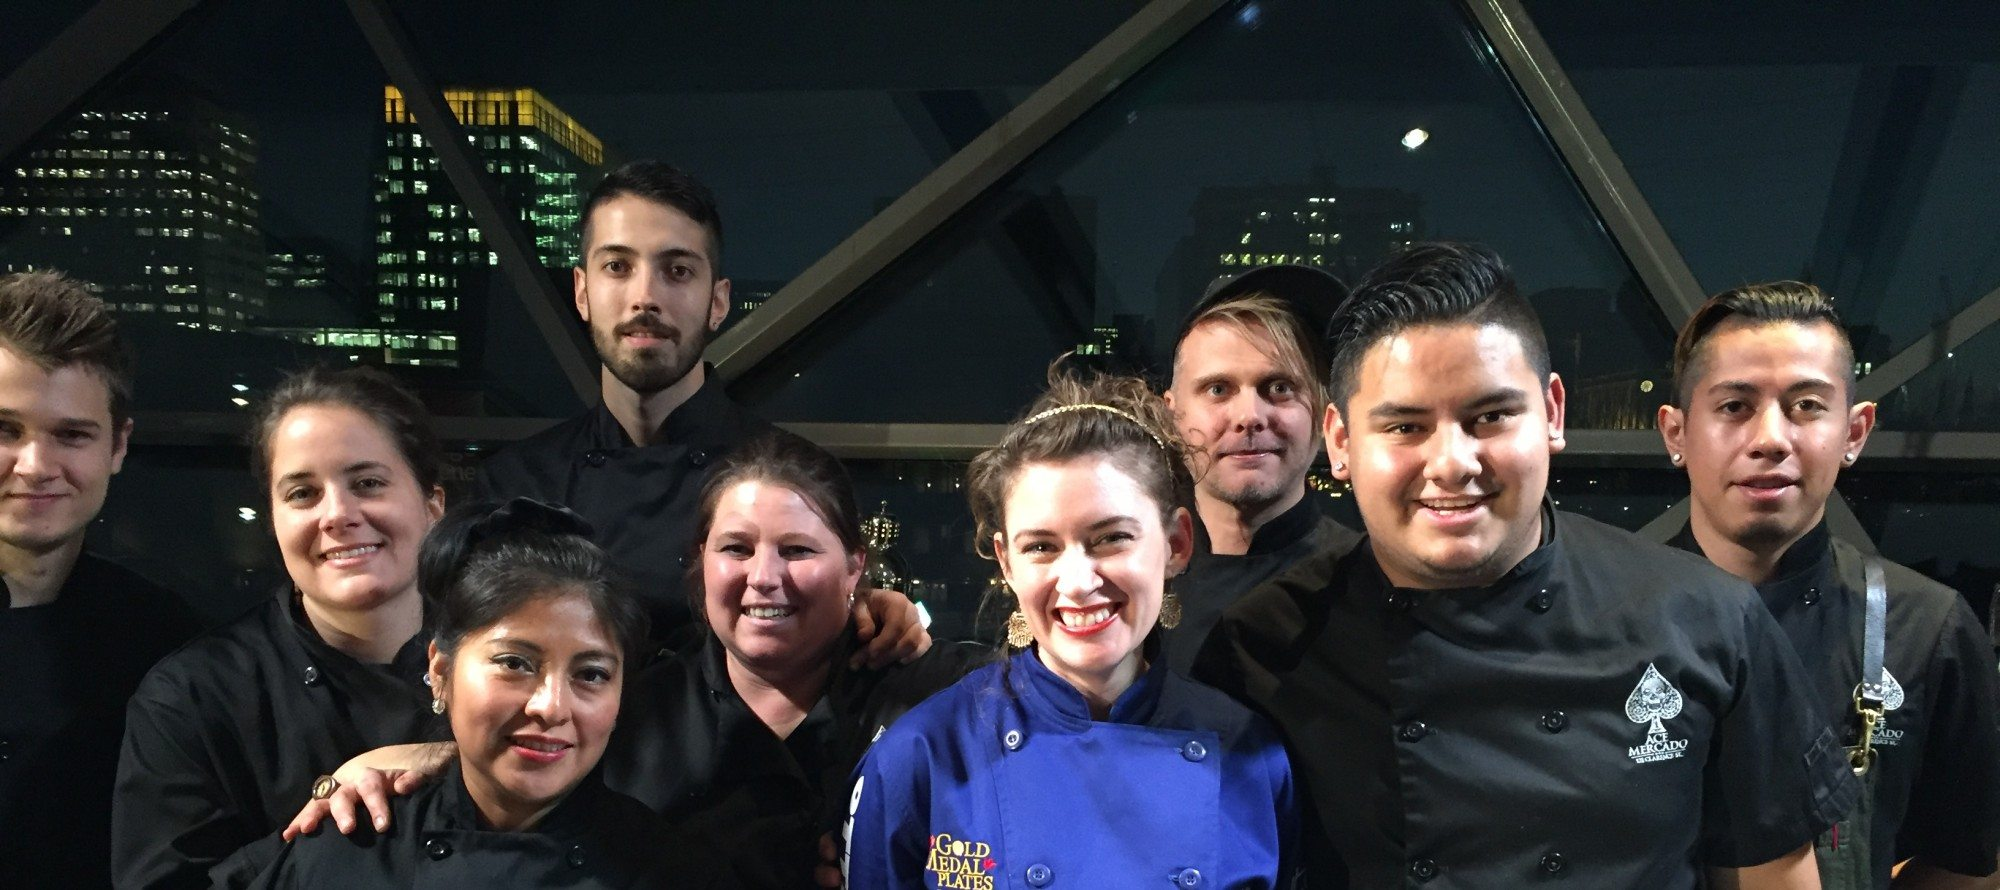 Gold Medal Plates kicks off Ottawa's best kitchen party